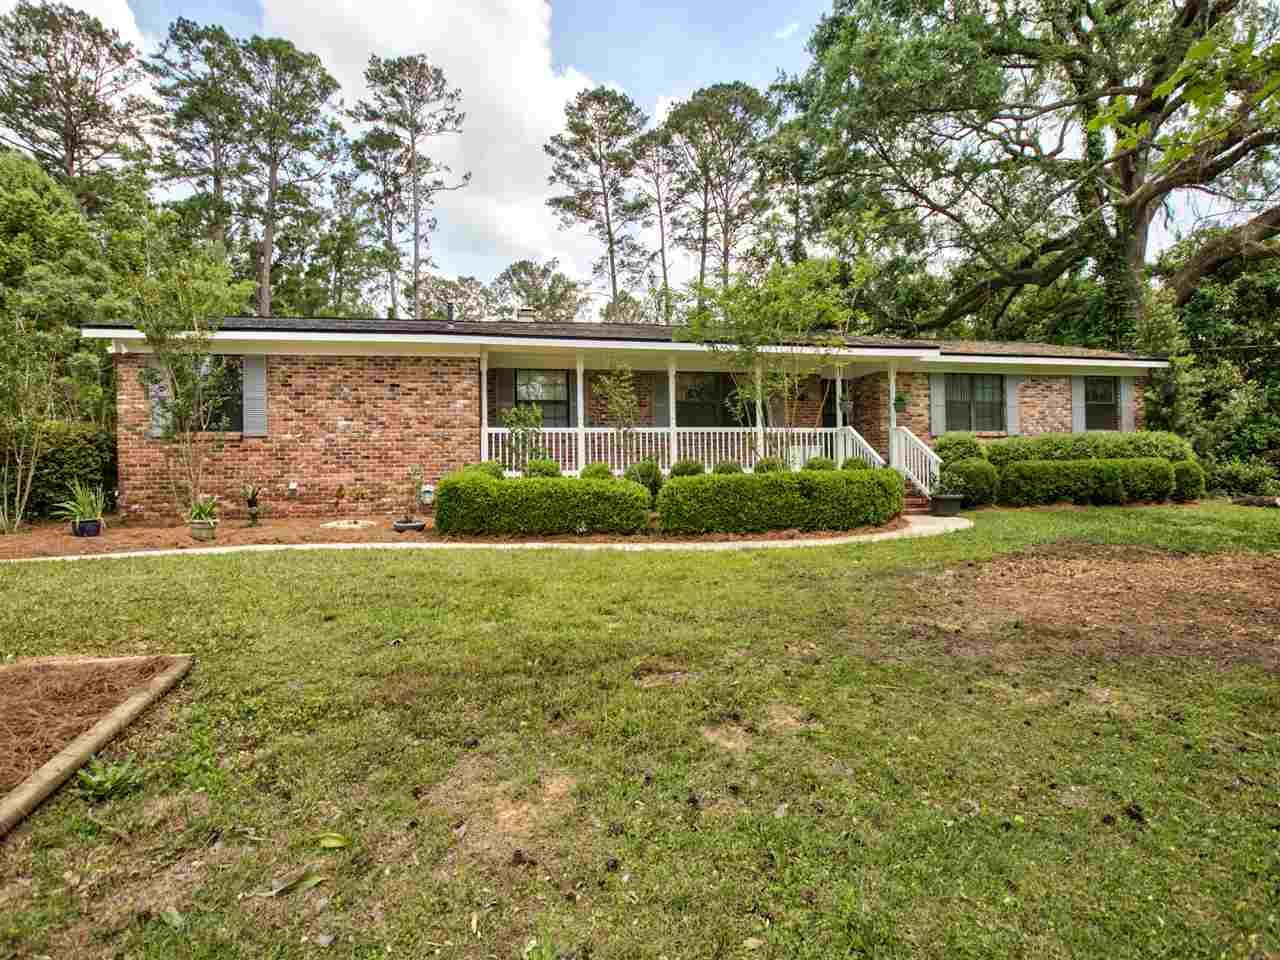 Photo of 3205 Sharer Road, TALLAHASSEE, FL 32312 (MLS # 316041)